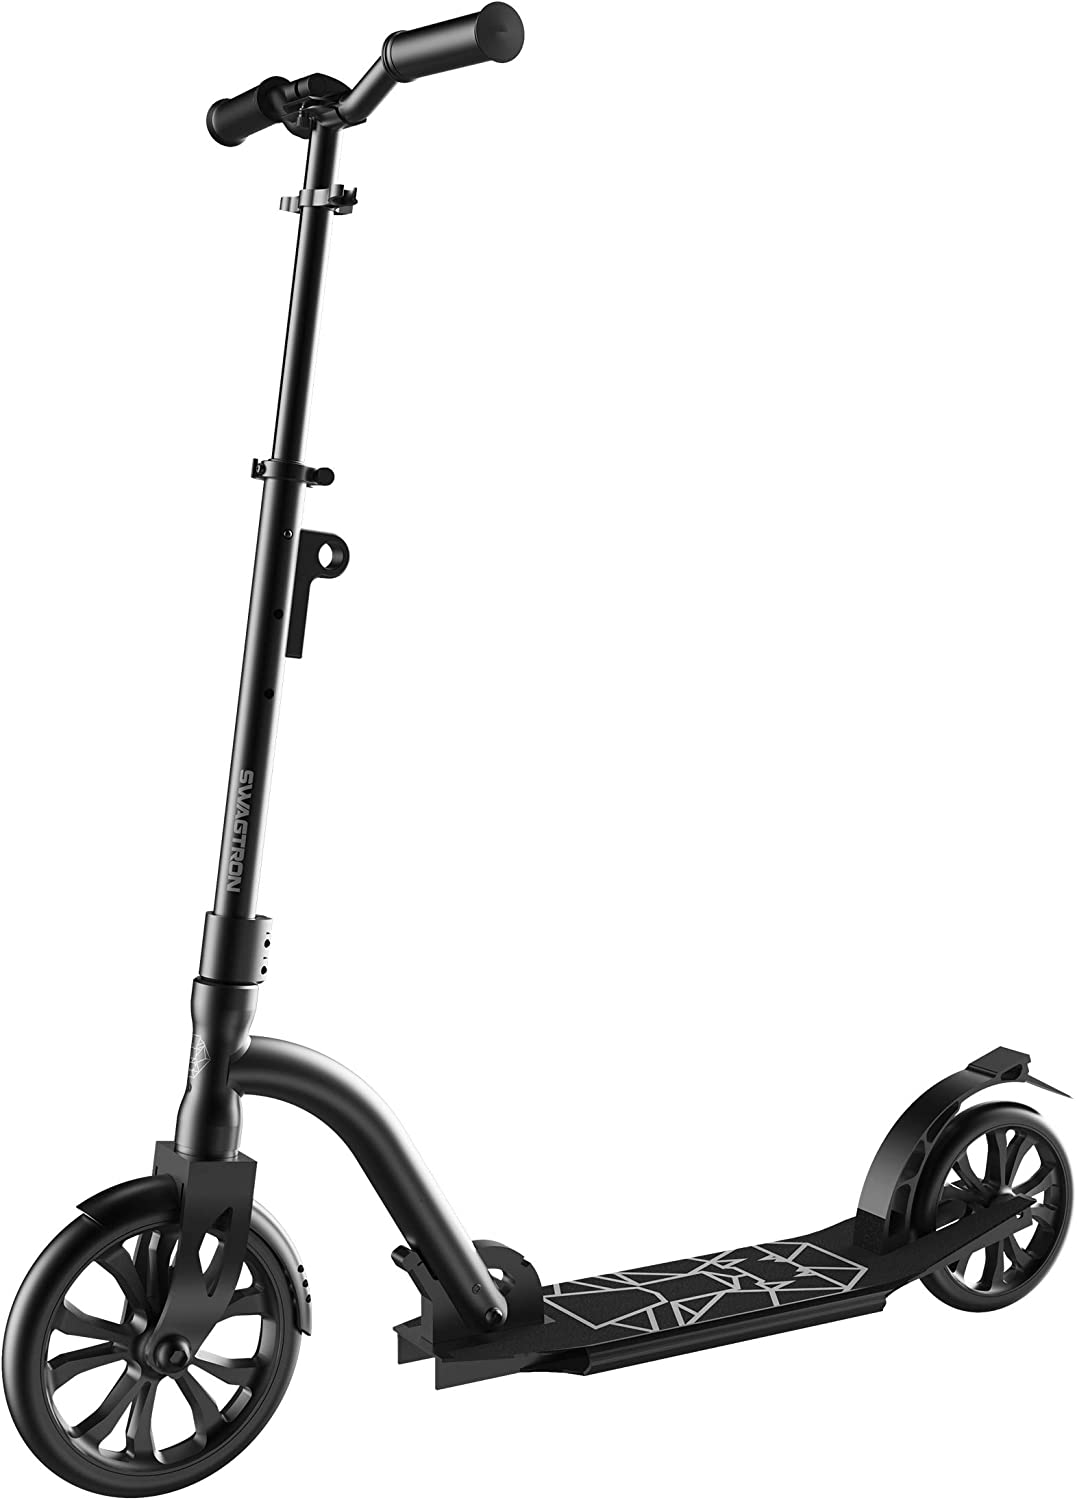 CITYGLIDE C200 Kick Scooter for Adults, Teens, Foldable, Lightweight, Adjustable